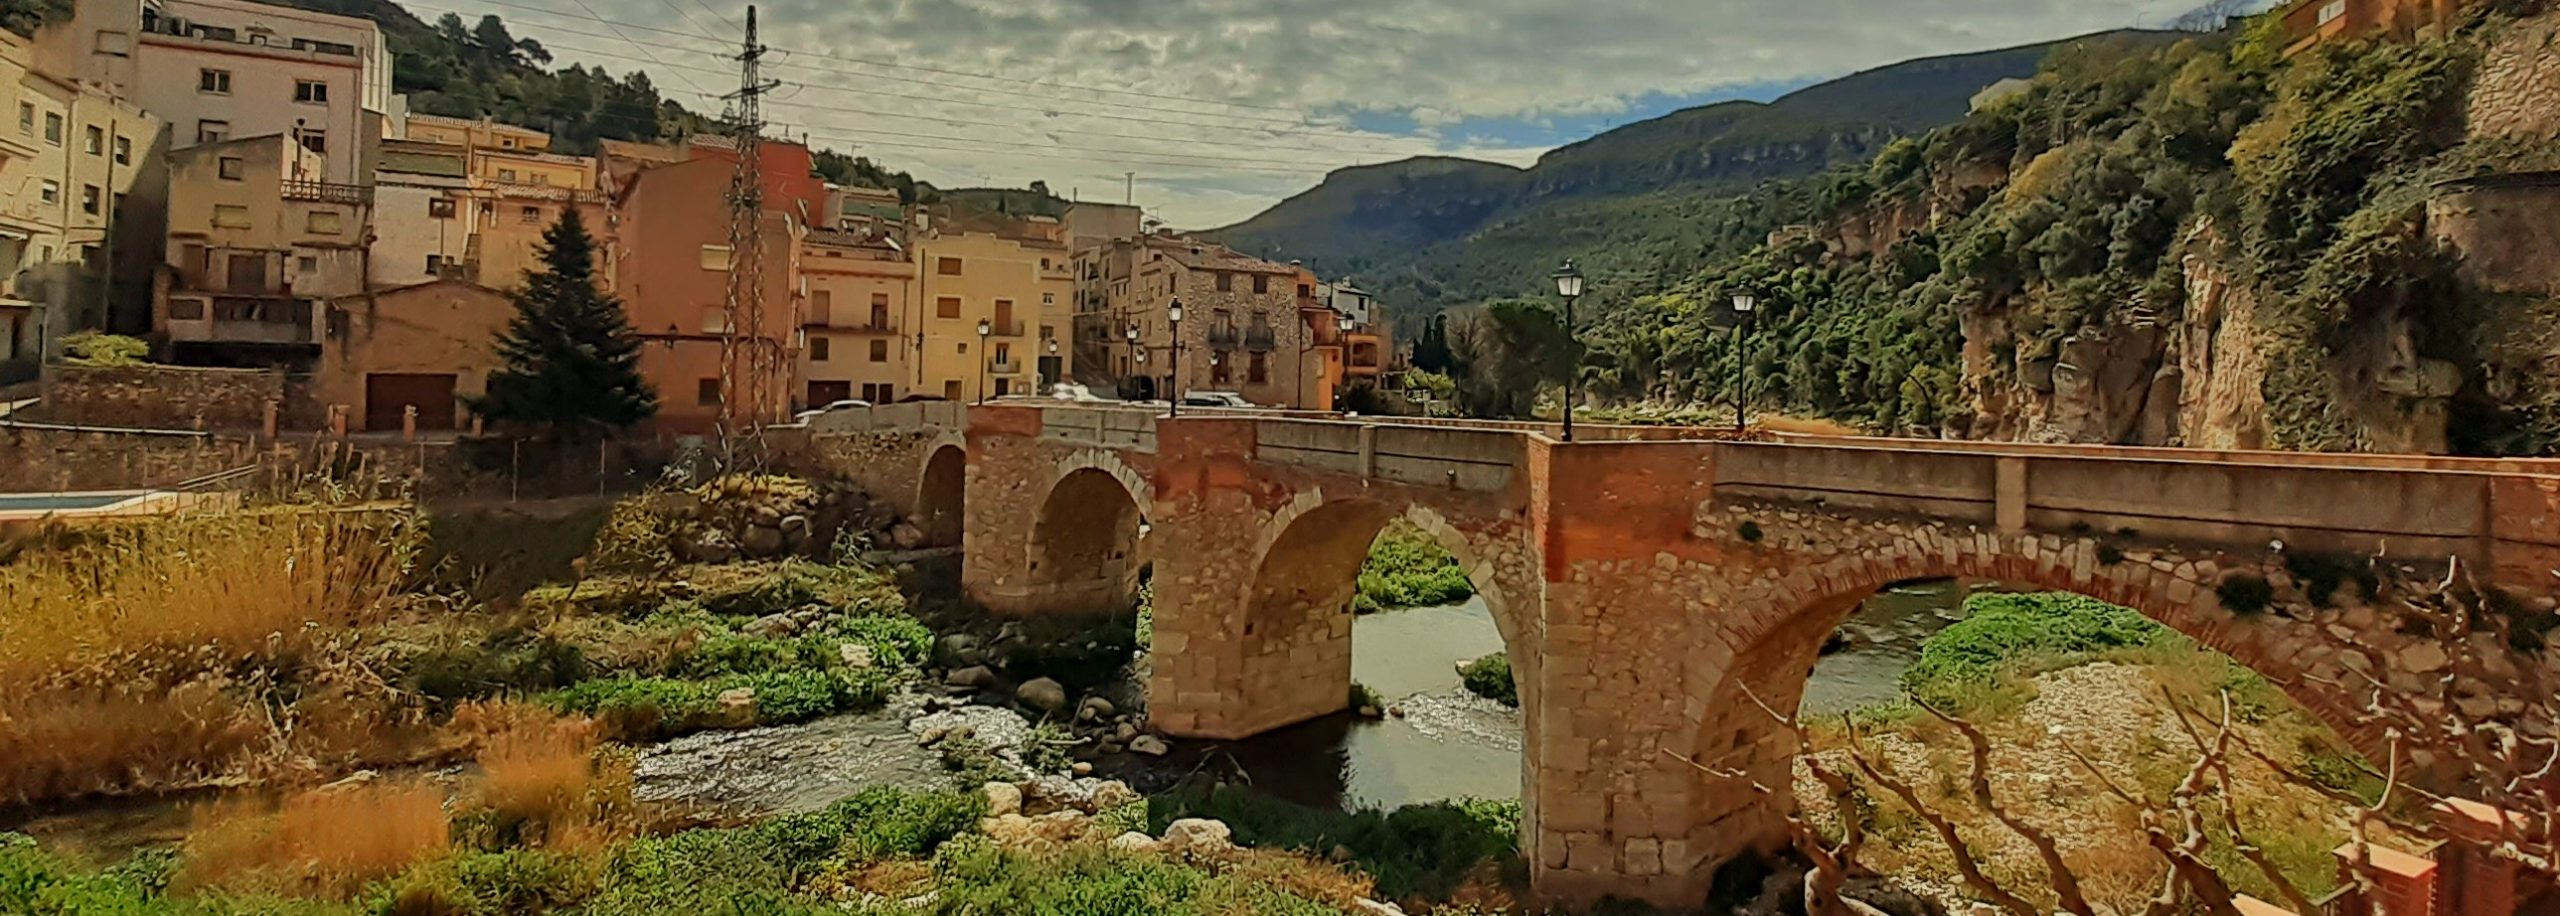 Hiking apps for Catalonia, Spain